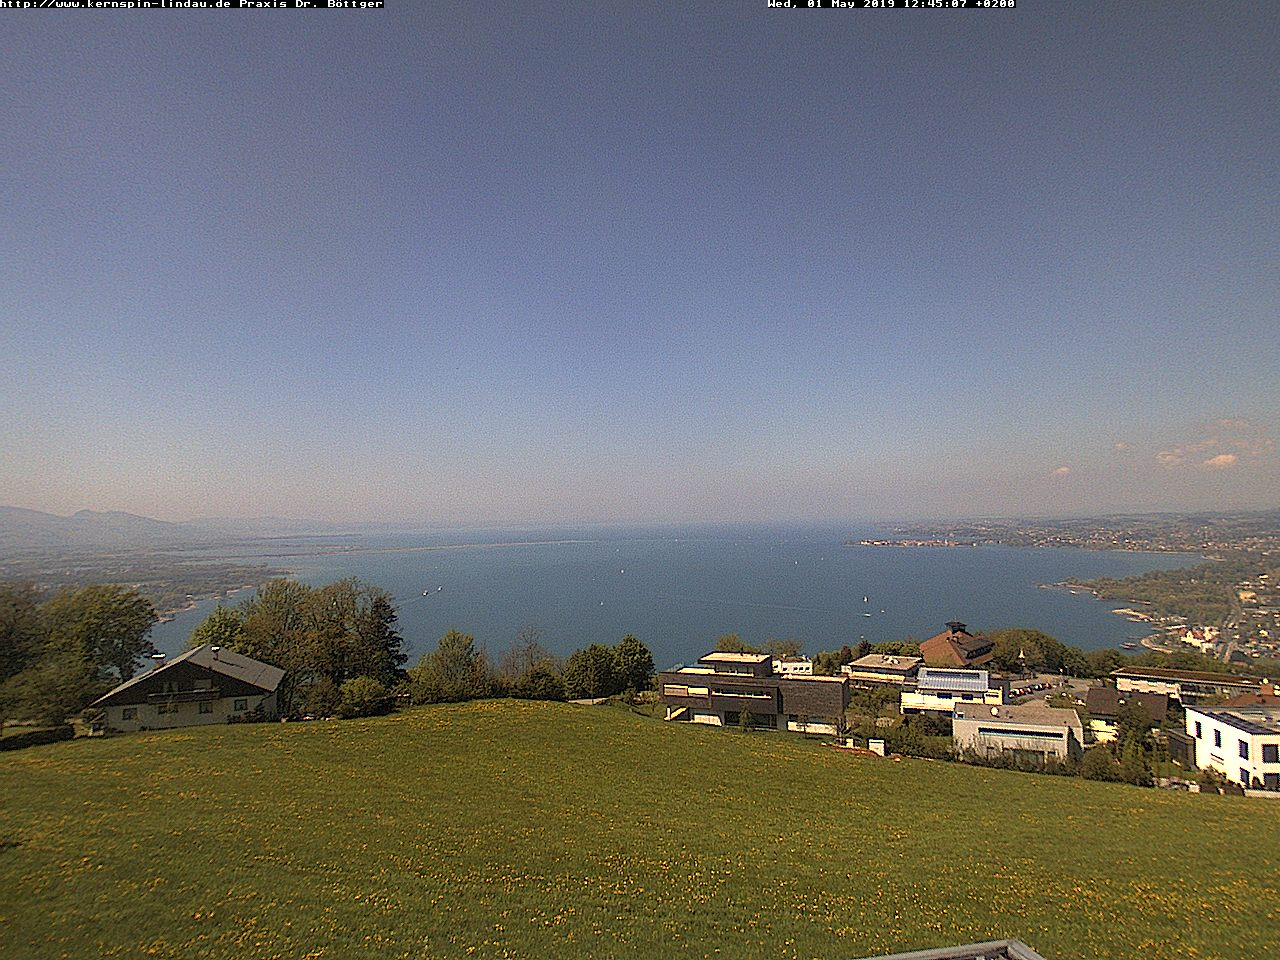 Lindau webcam - Kernspin Lindau 2 webcam, Bavaria, Lindau